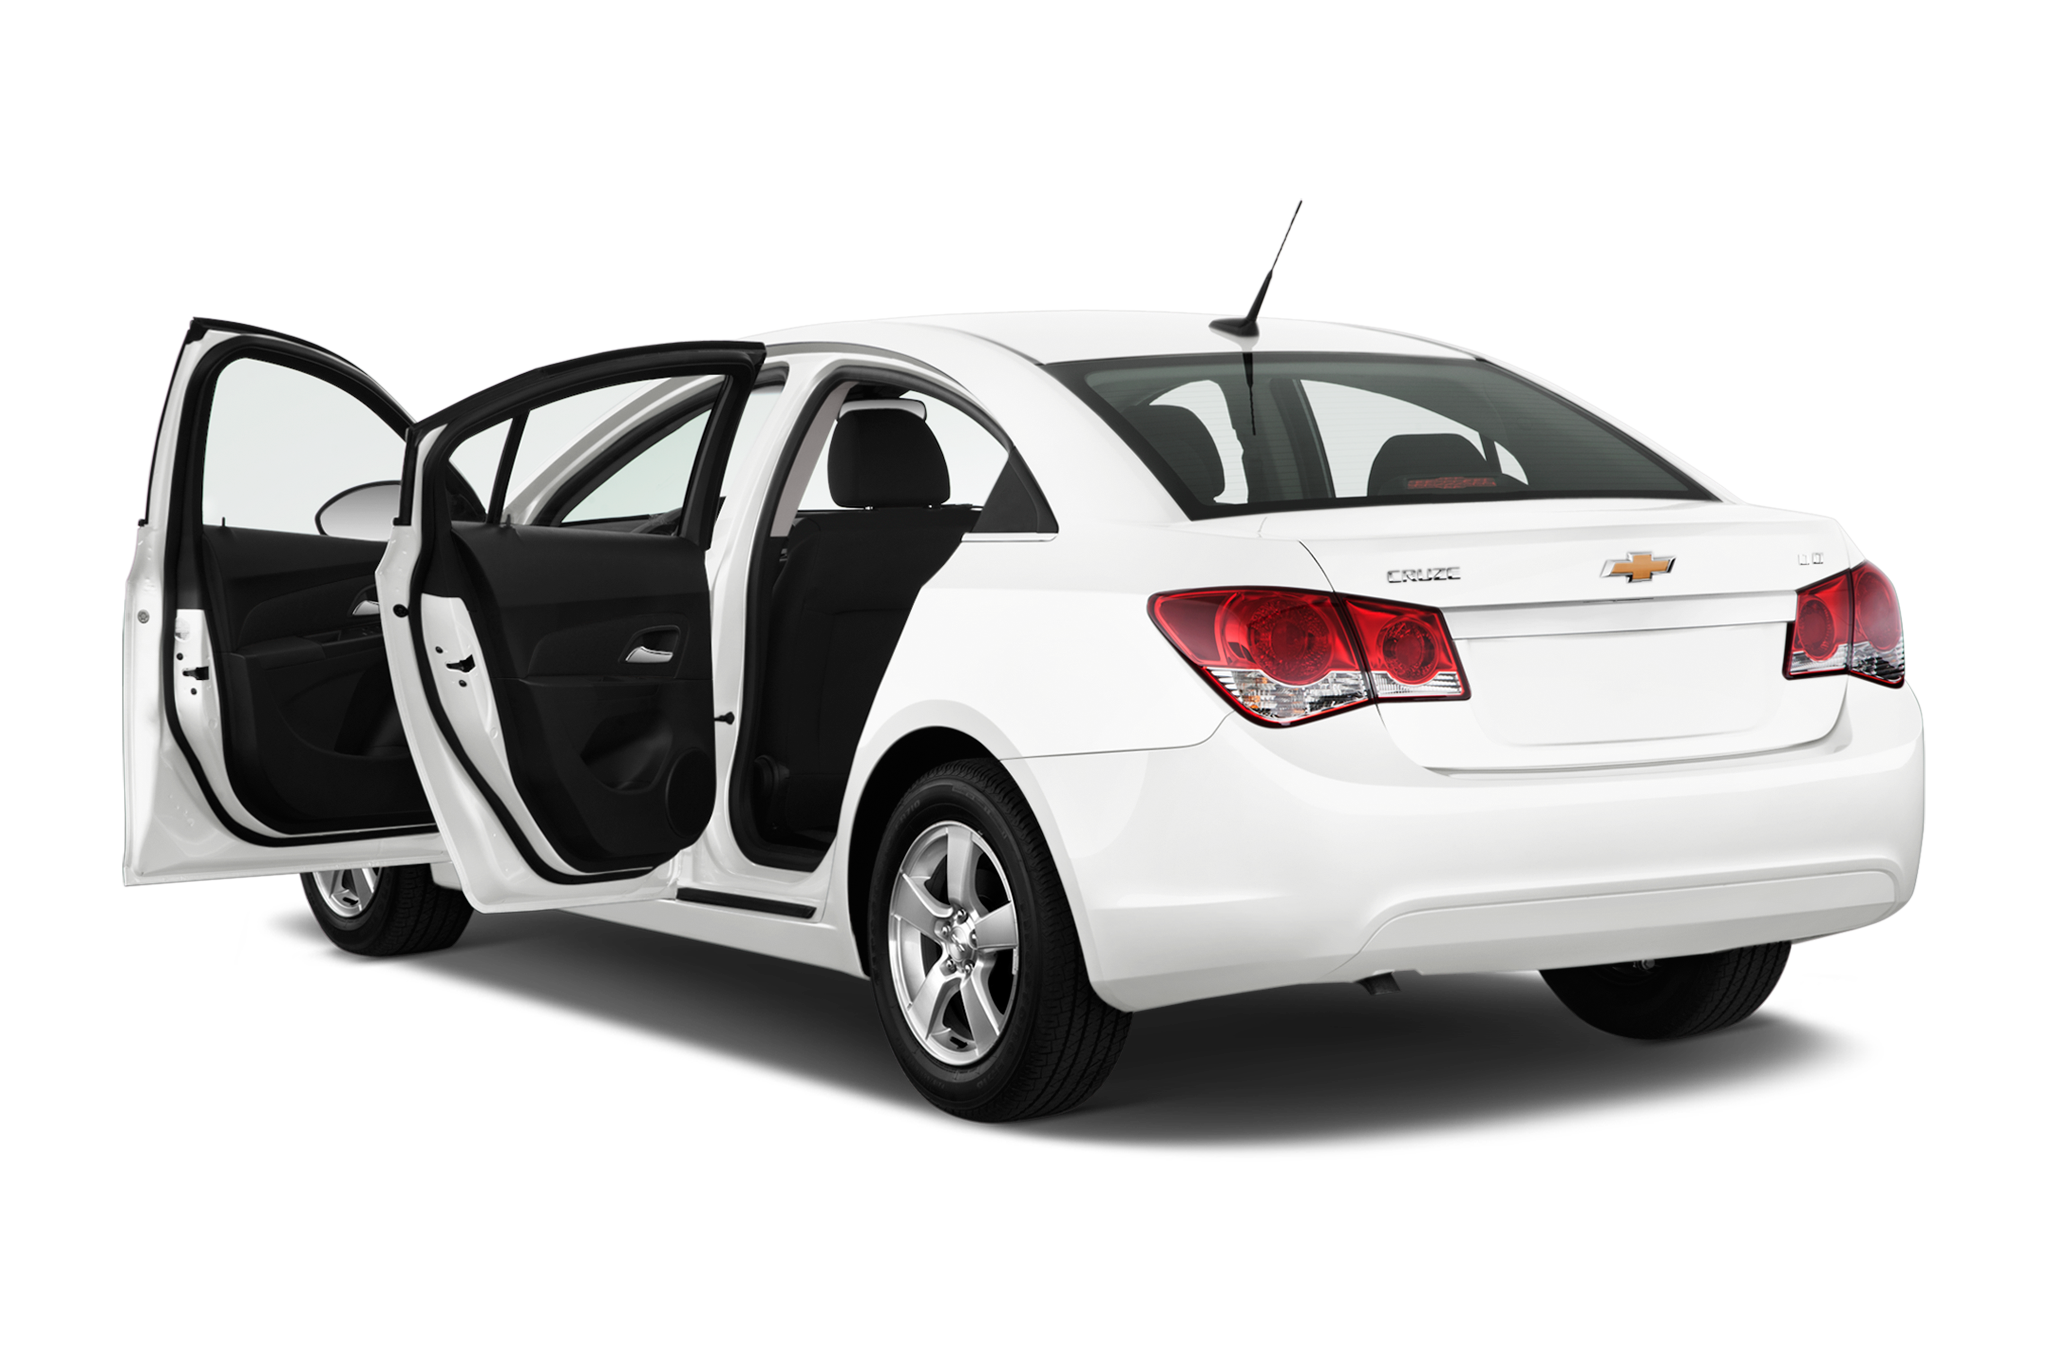 sedan cars fl carsforsale chevrolet for fine cruze diesel sale in miami used stock florida